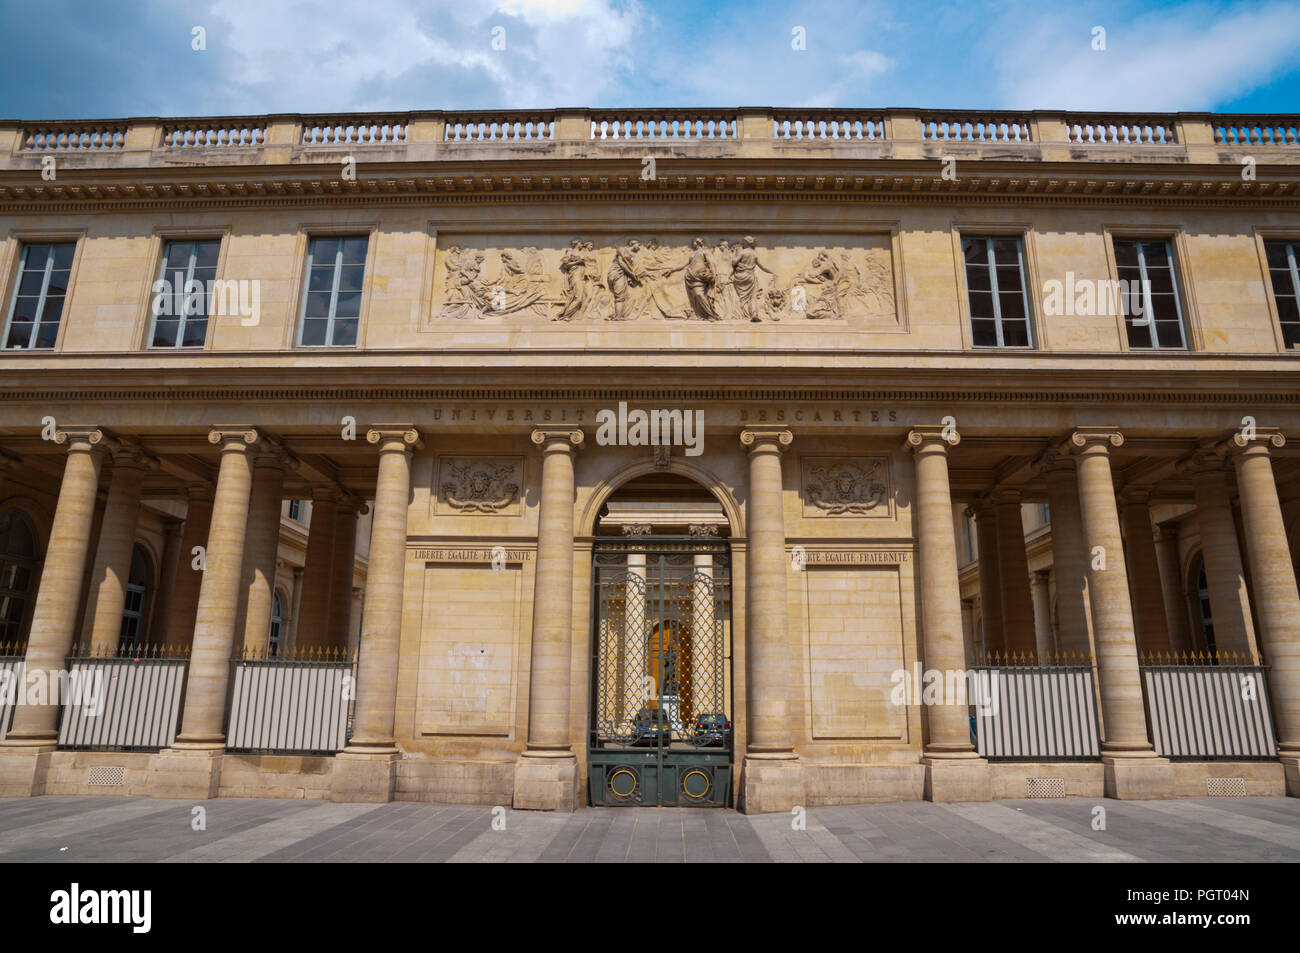 Universite Rene Descartes, St Germain des Pres, Left Bank, Paris, France - Stock Image